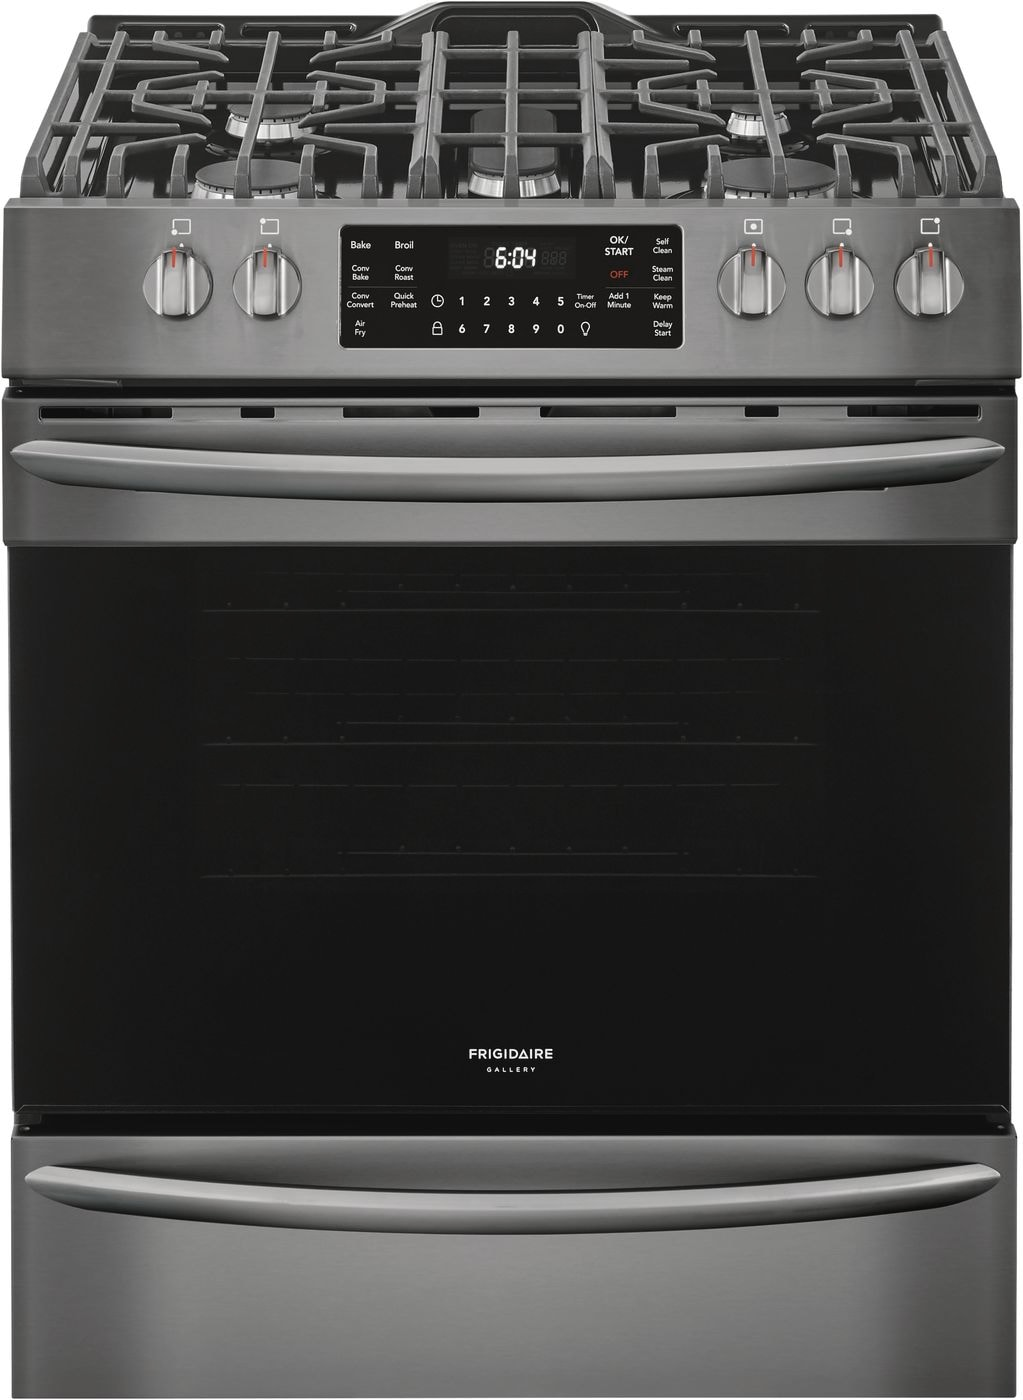 """Model: FGGH3047VD 